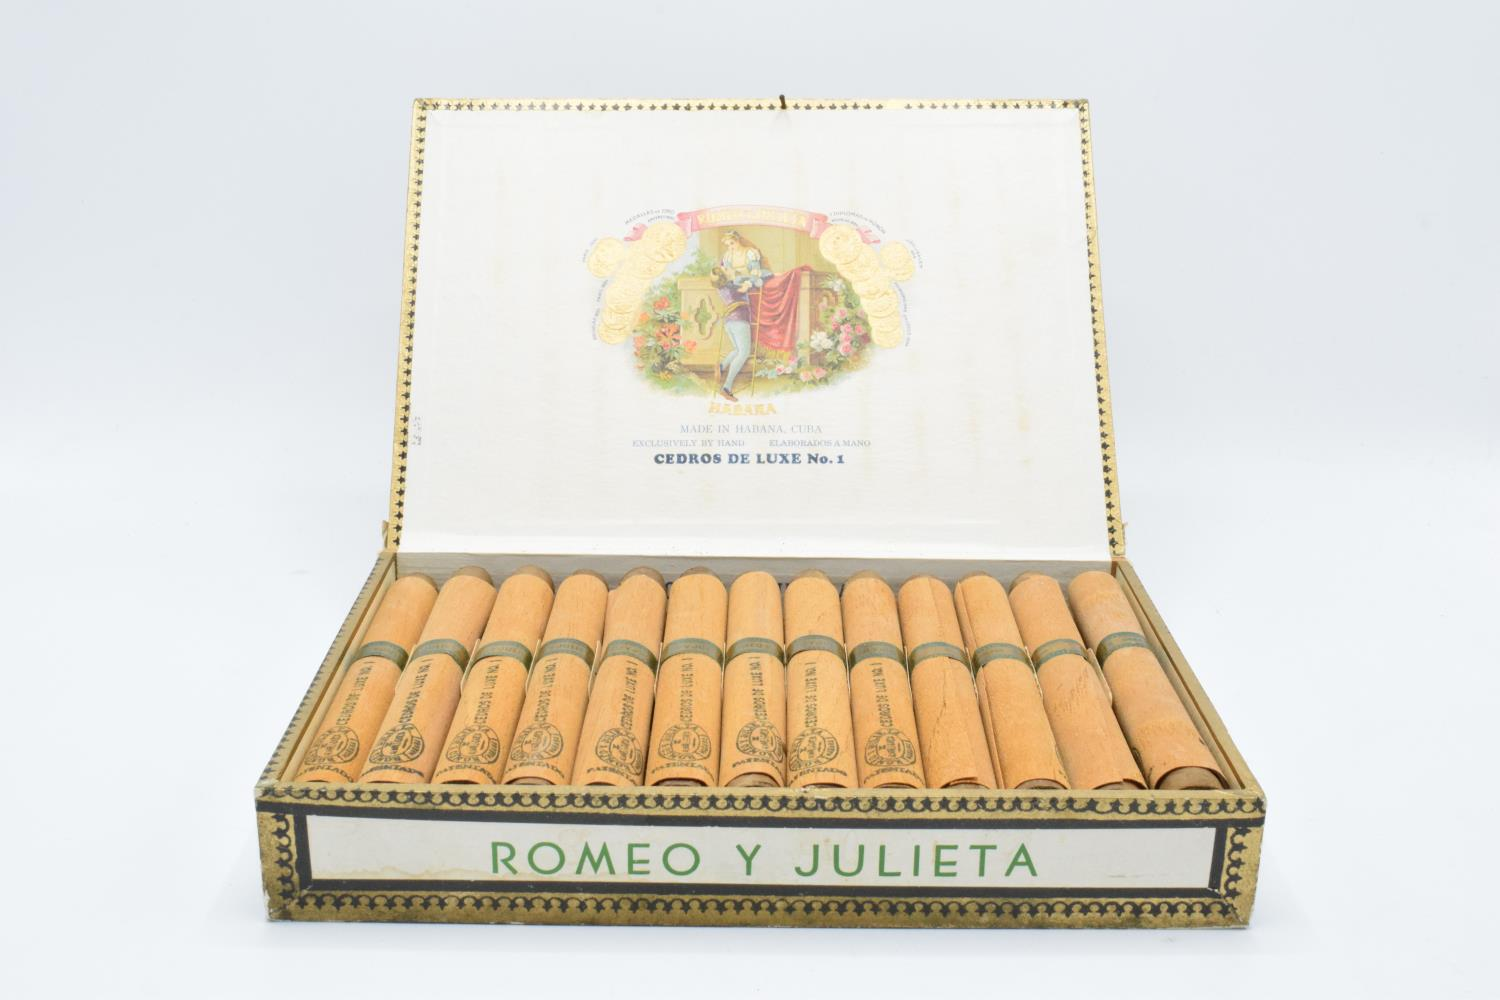 A cased set of 25 Romeo y Julieta Cedros De Luxe No.1 cigars made in Habana, Cuba. Appear to be in